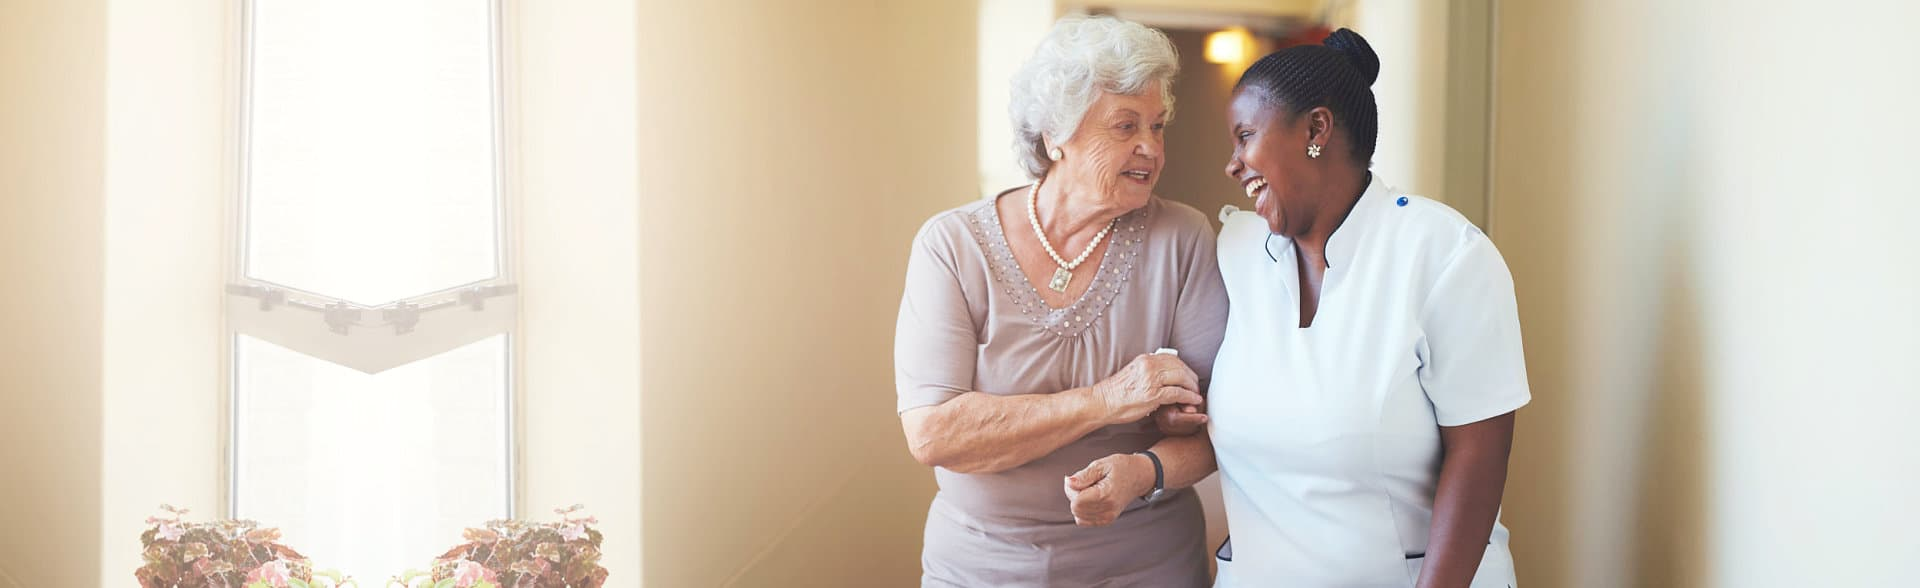 elderly woman and caregiver talking while walking happily